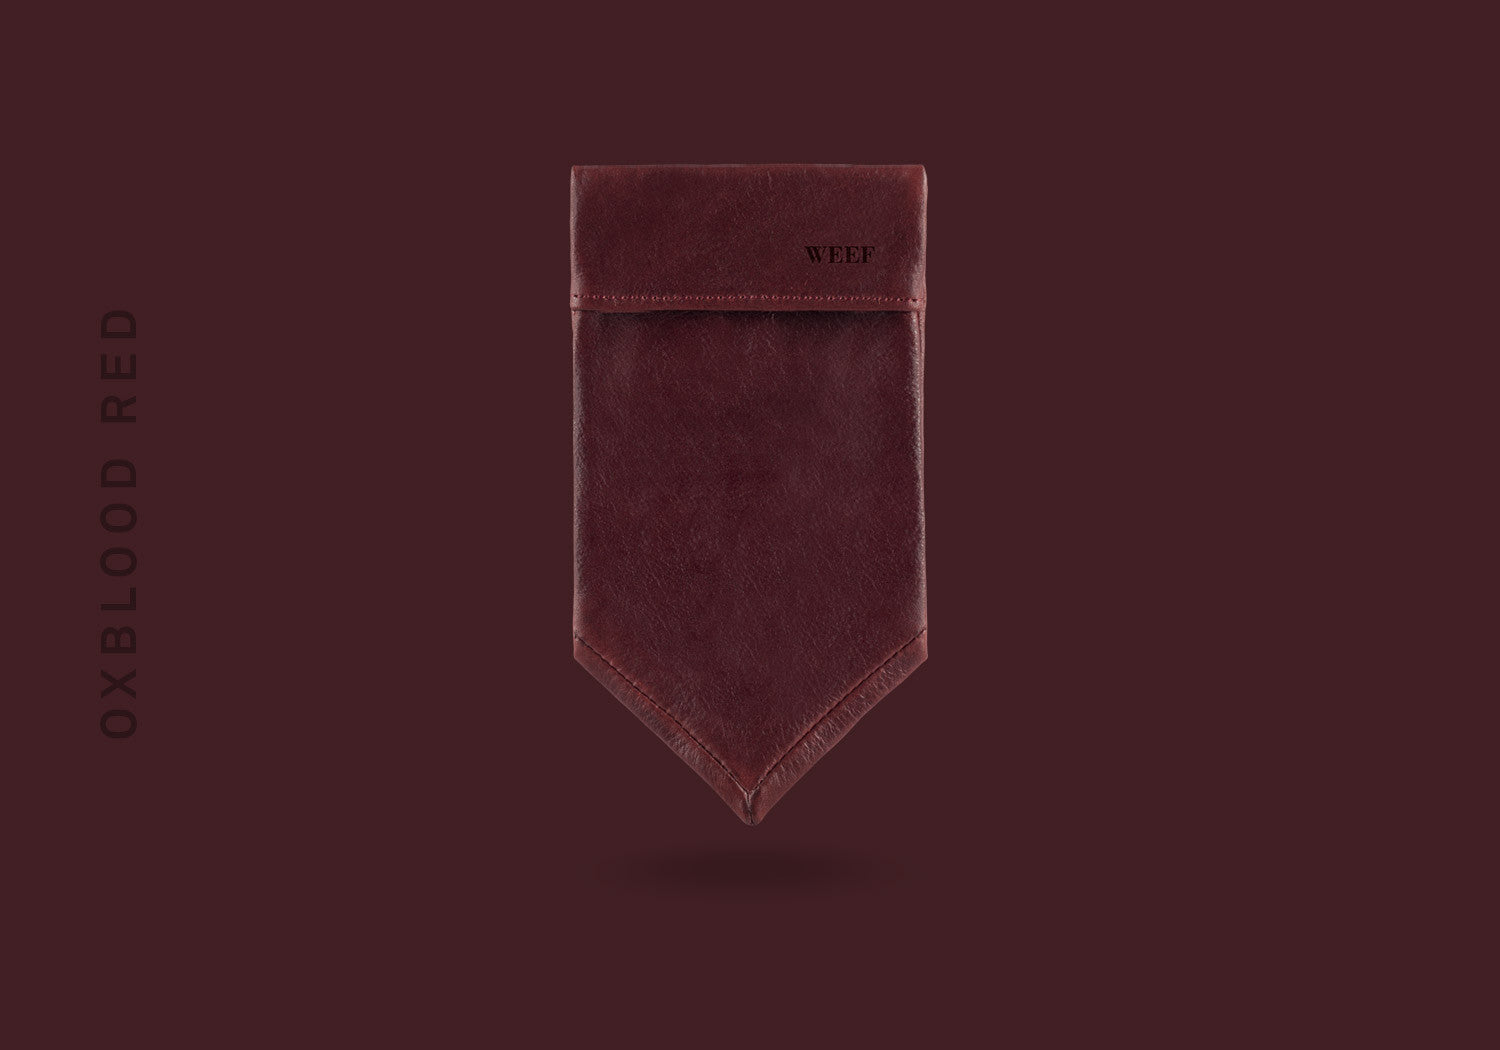 This oxblood red WEEF handmade leather pocket square is a great present or gift idea for dapper and stylish gentlemen for fathers day, valentines day or Christmas.